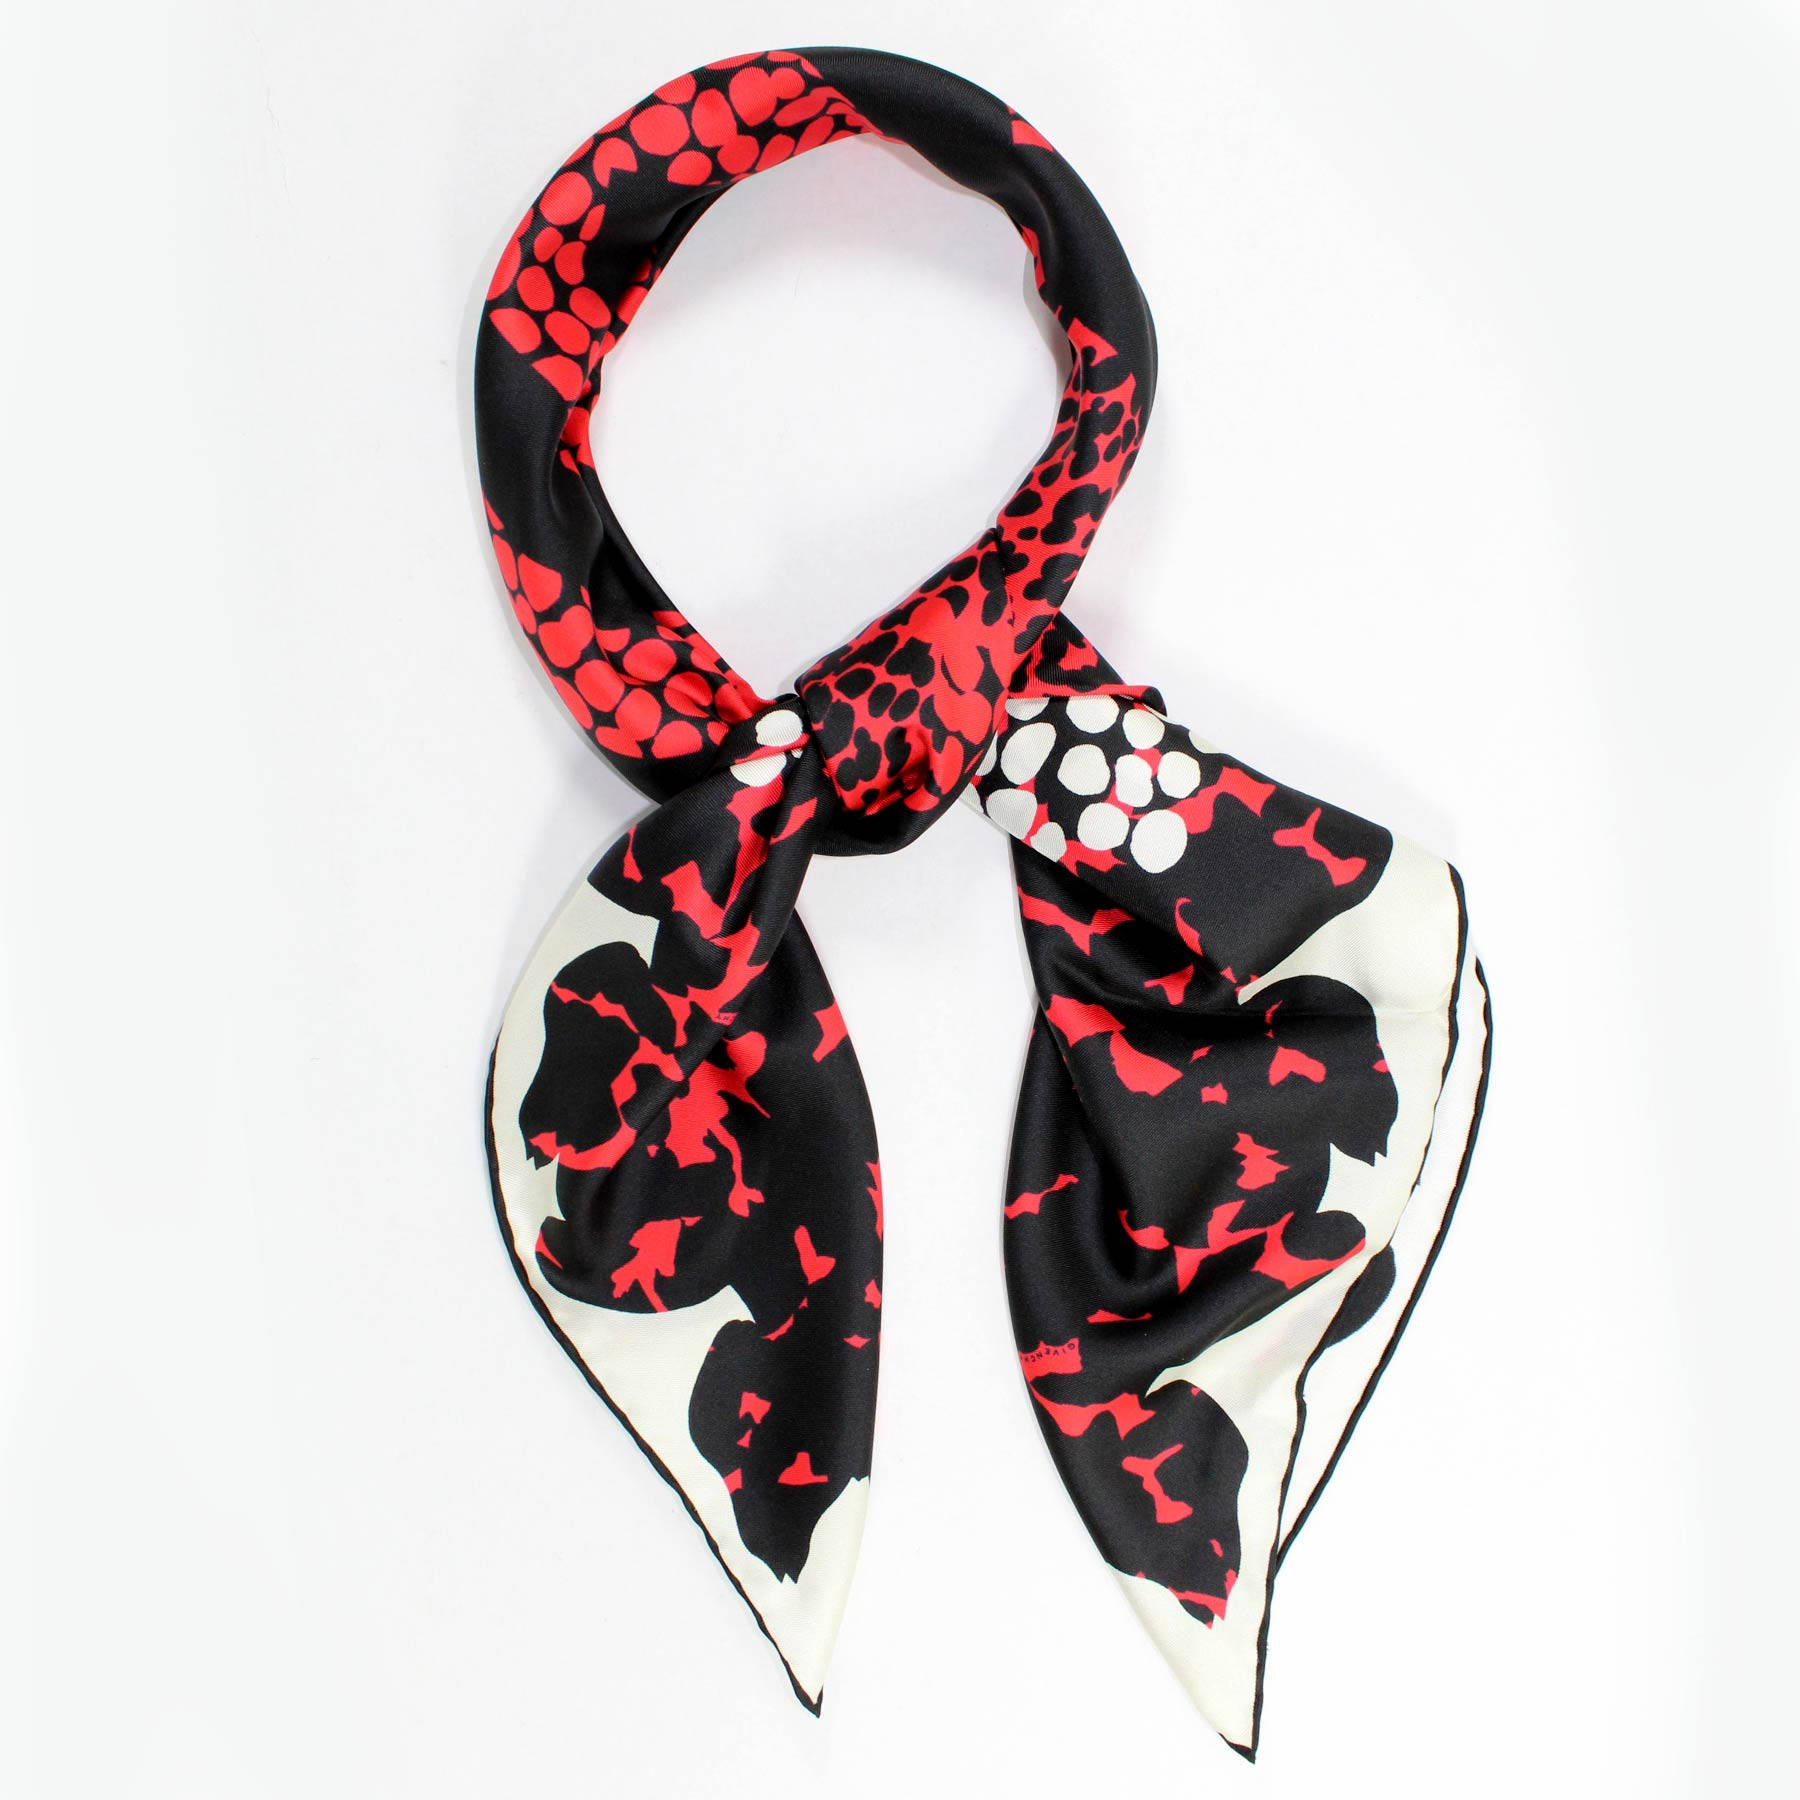 ed84a544903 Givenchy Scarf Red Black Design - Twill Silk Large Square Scarf ...